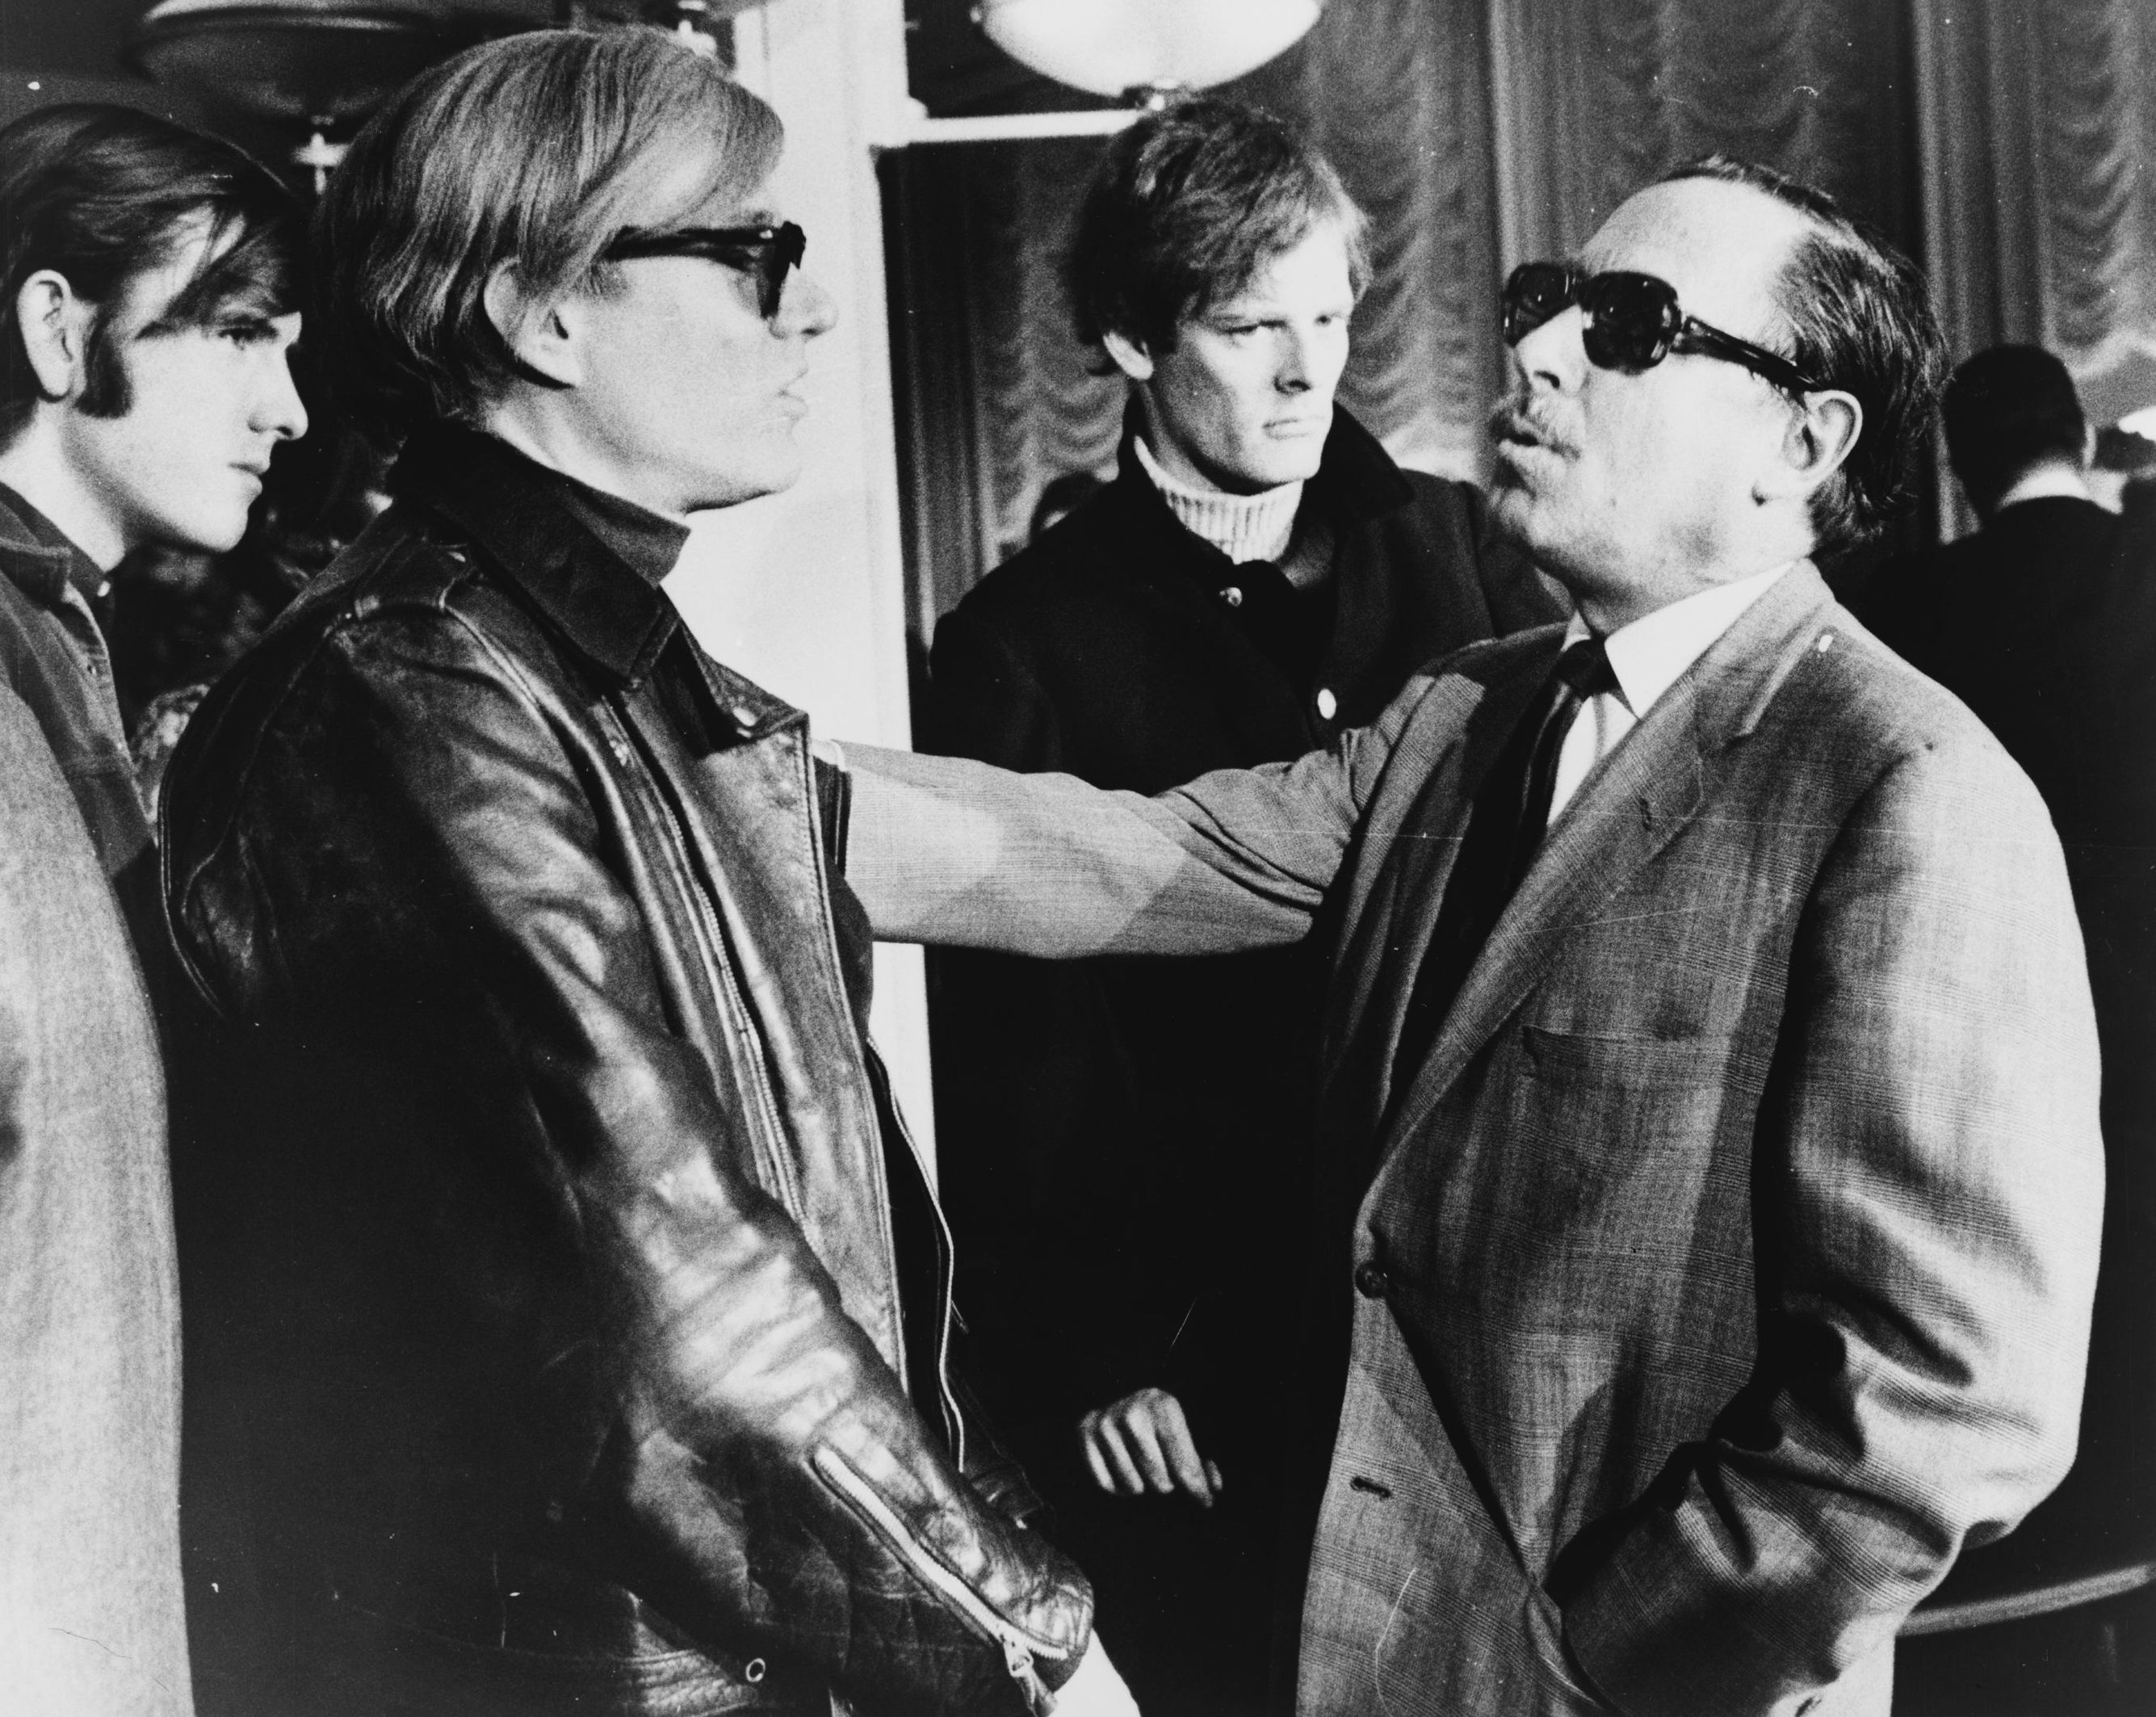 Andy Warhol, Paul Morrissey und Tennessee Williams, 1967